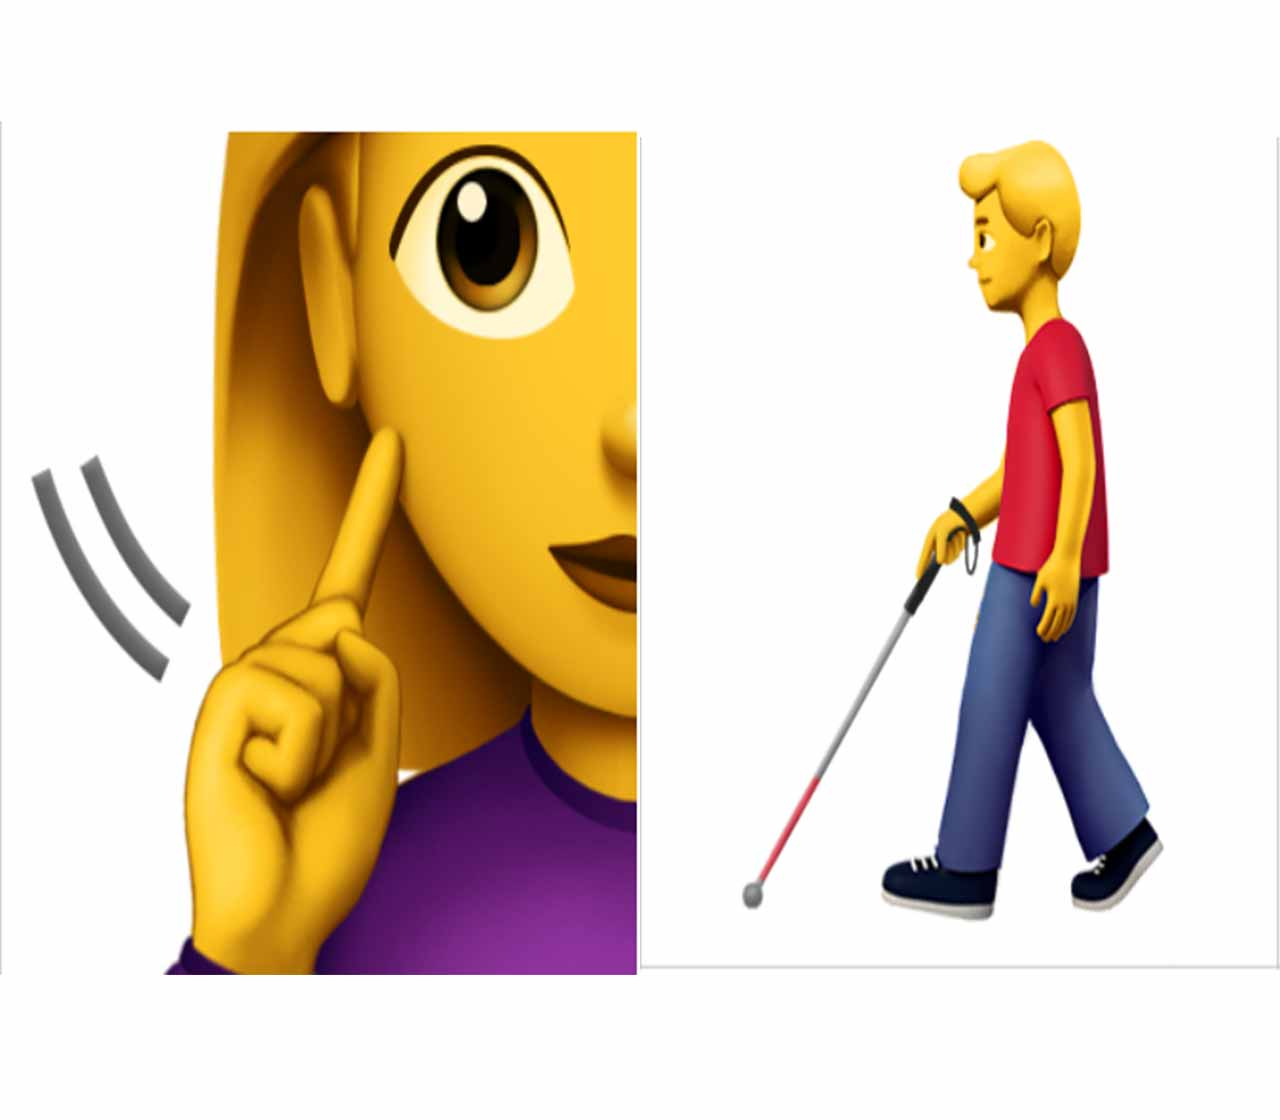 wheelchair emoji high chair alternatives for toddlers apple proposes new emojis representing people with